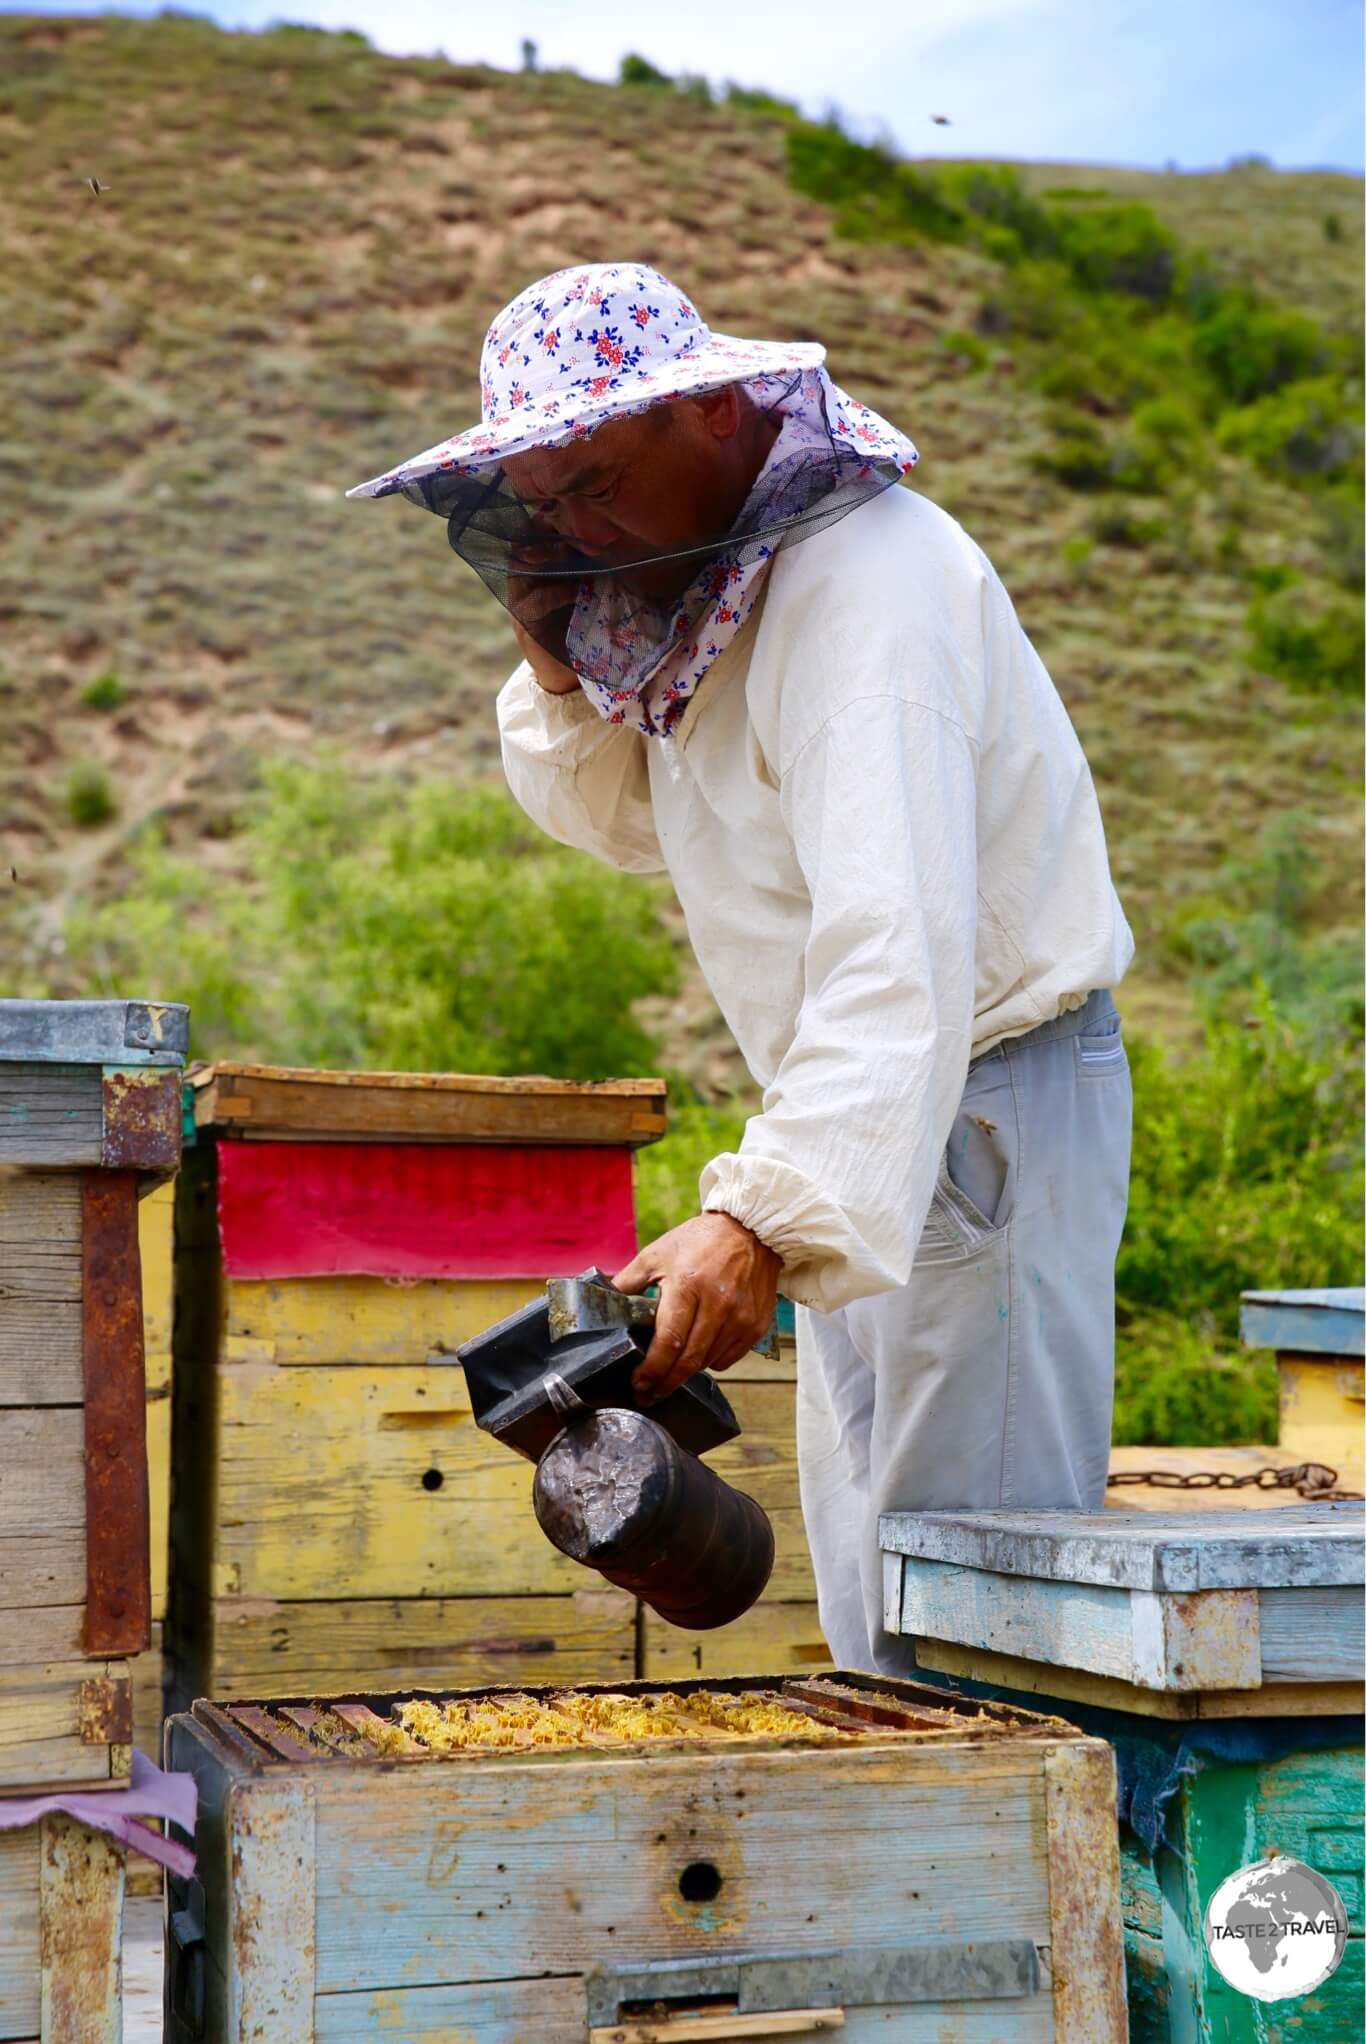 The bee keeper applying smoke to the newly-opened hive.